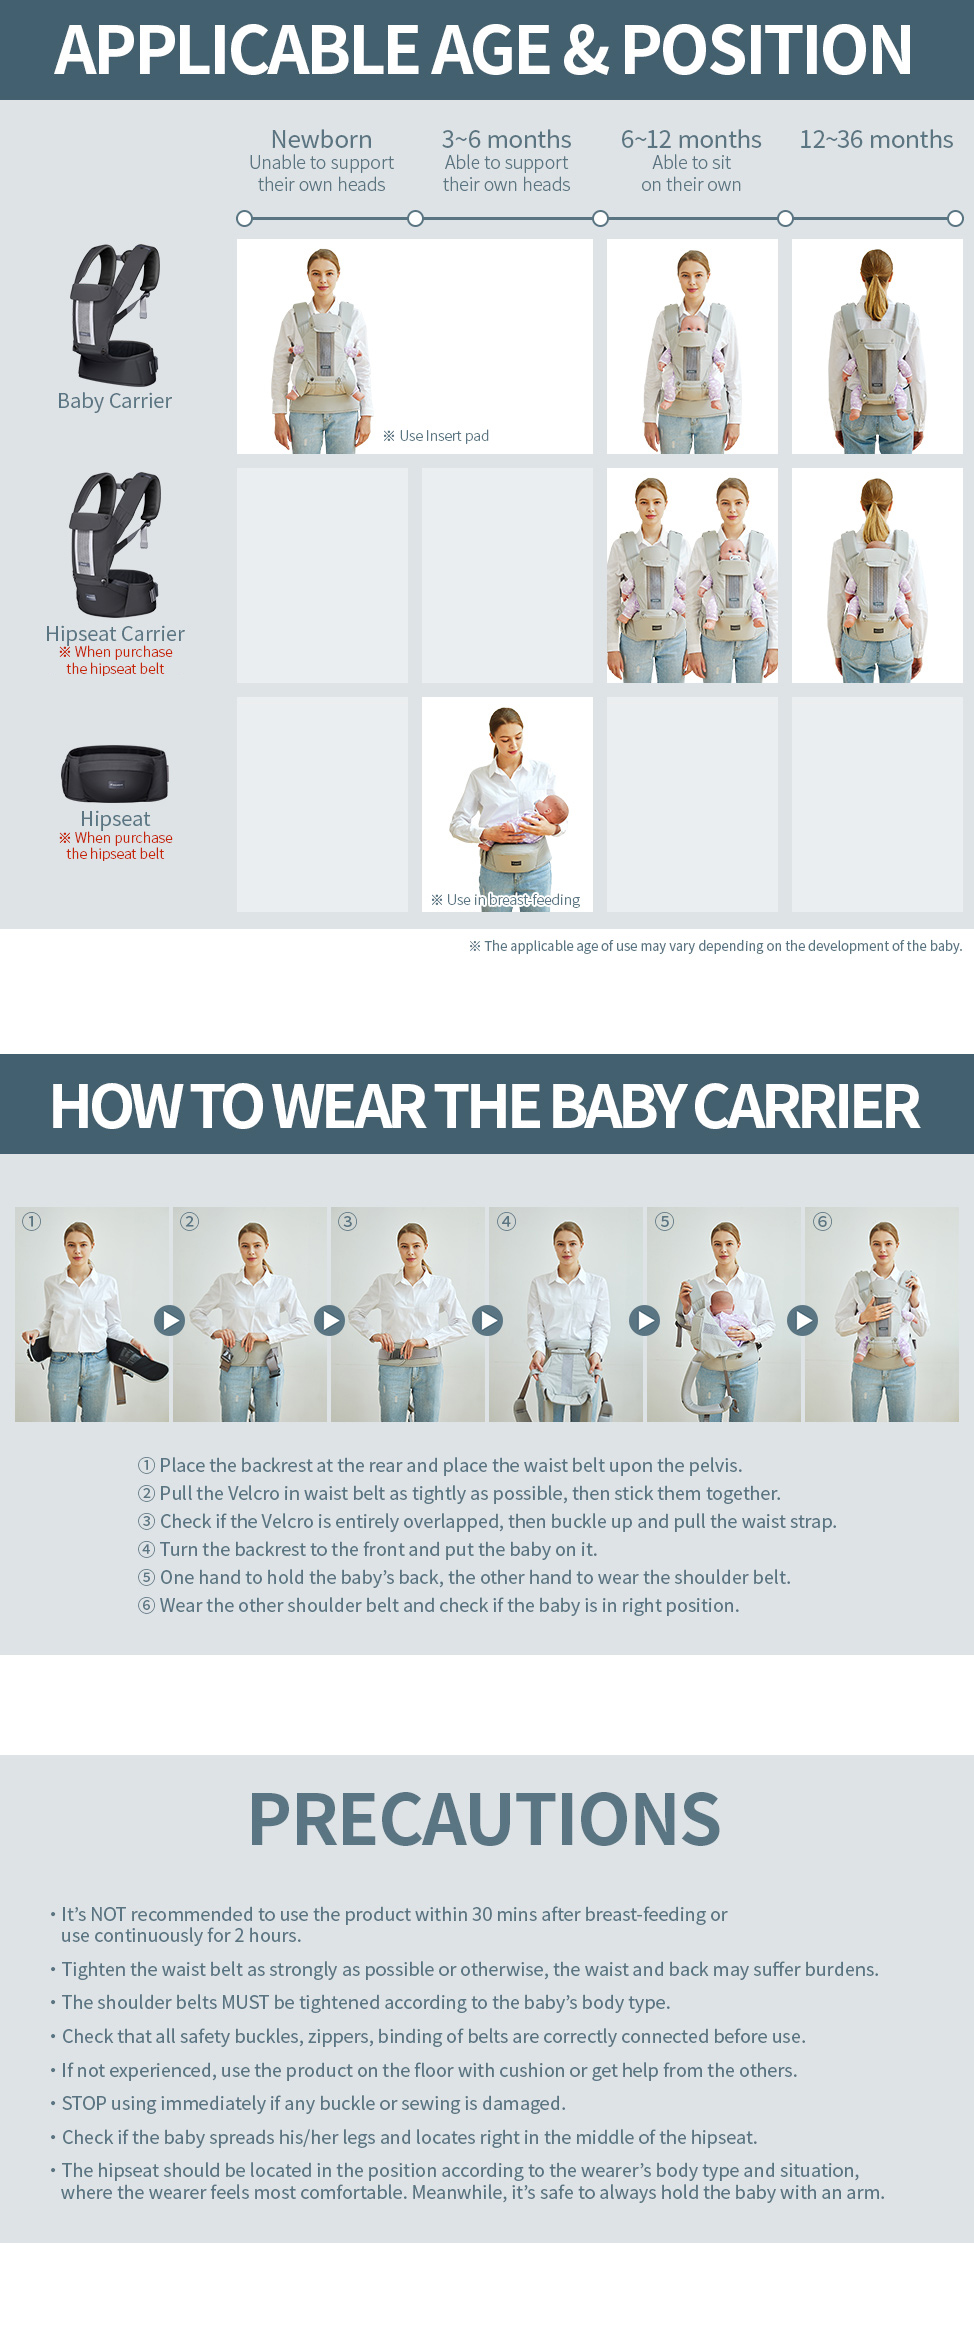 How to wear the baby carrier